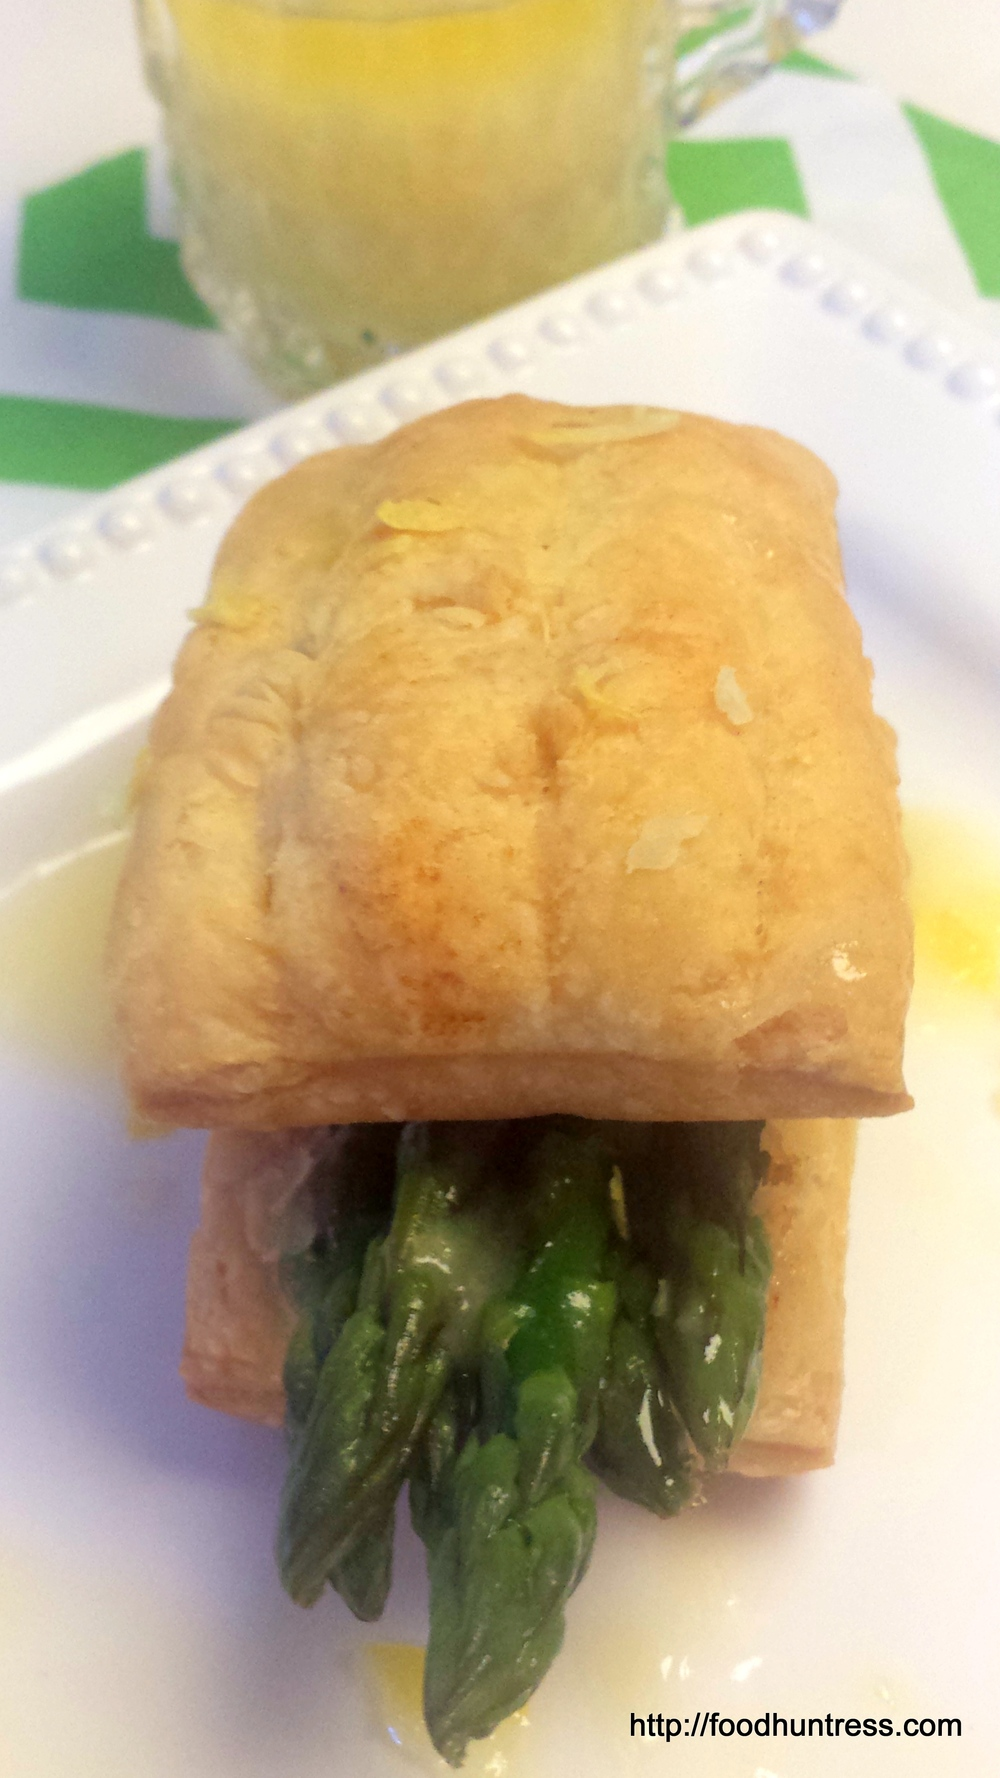 Asparagus+Tips+in+Puff+Pastry+with+Lemon+Butter+Sauce Asparagus Tips in Puff Pastry with Lemon Butter